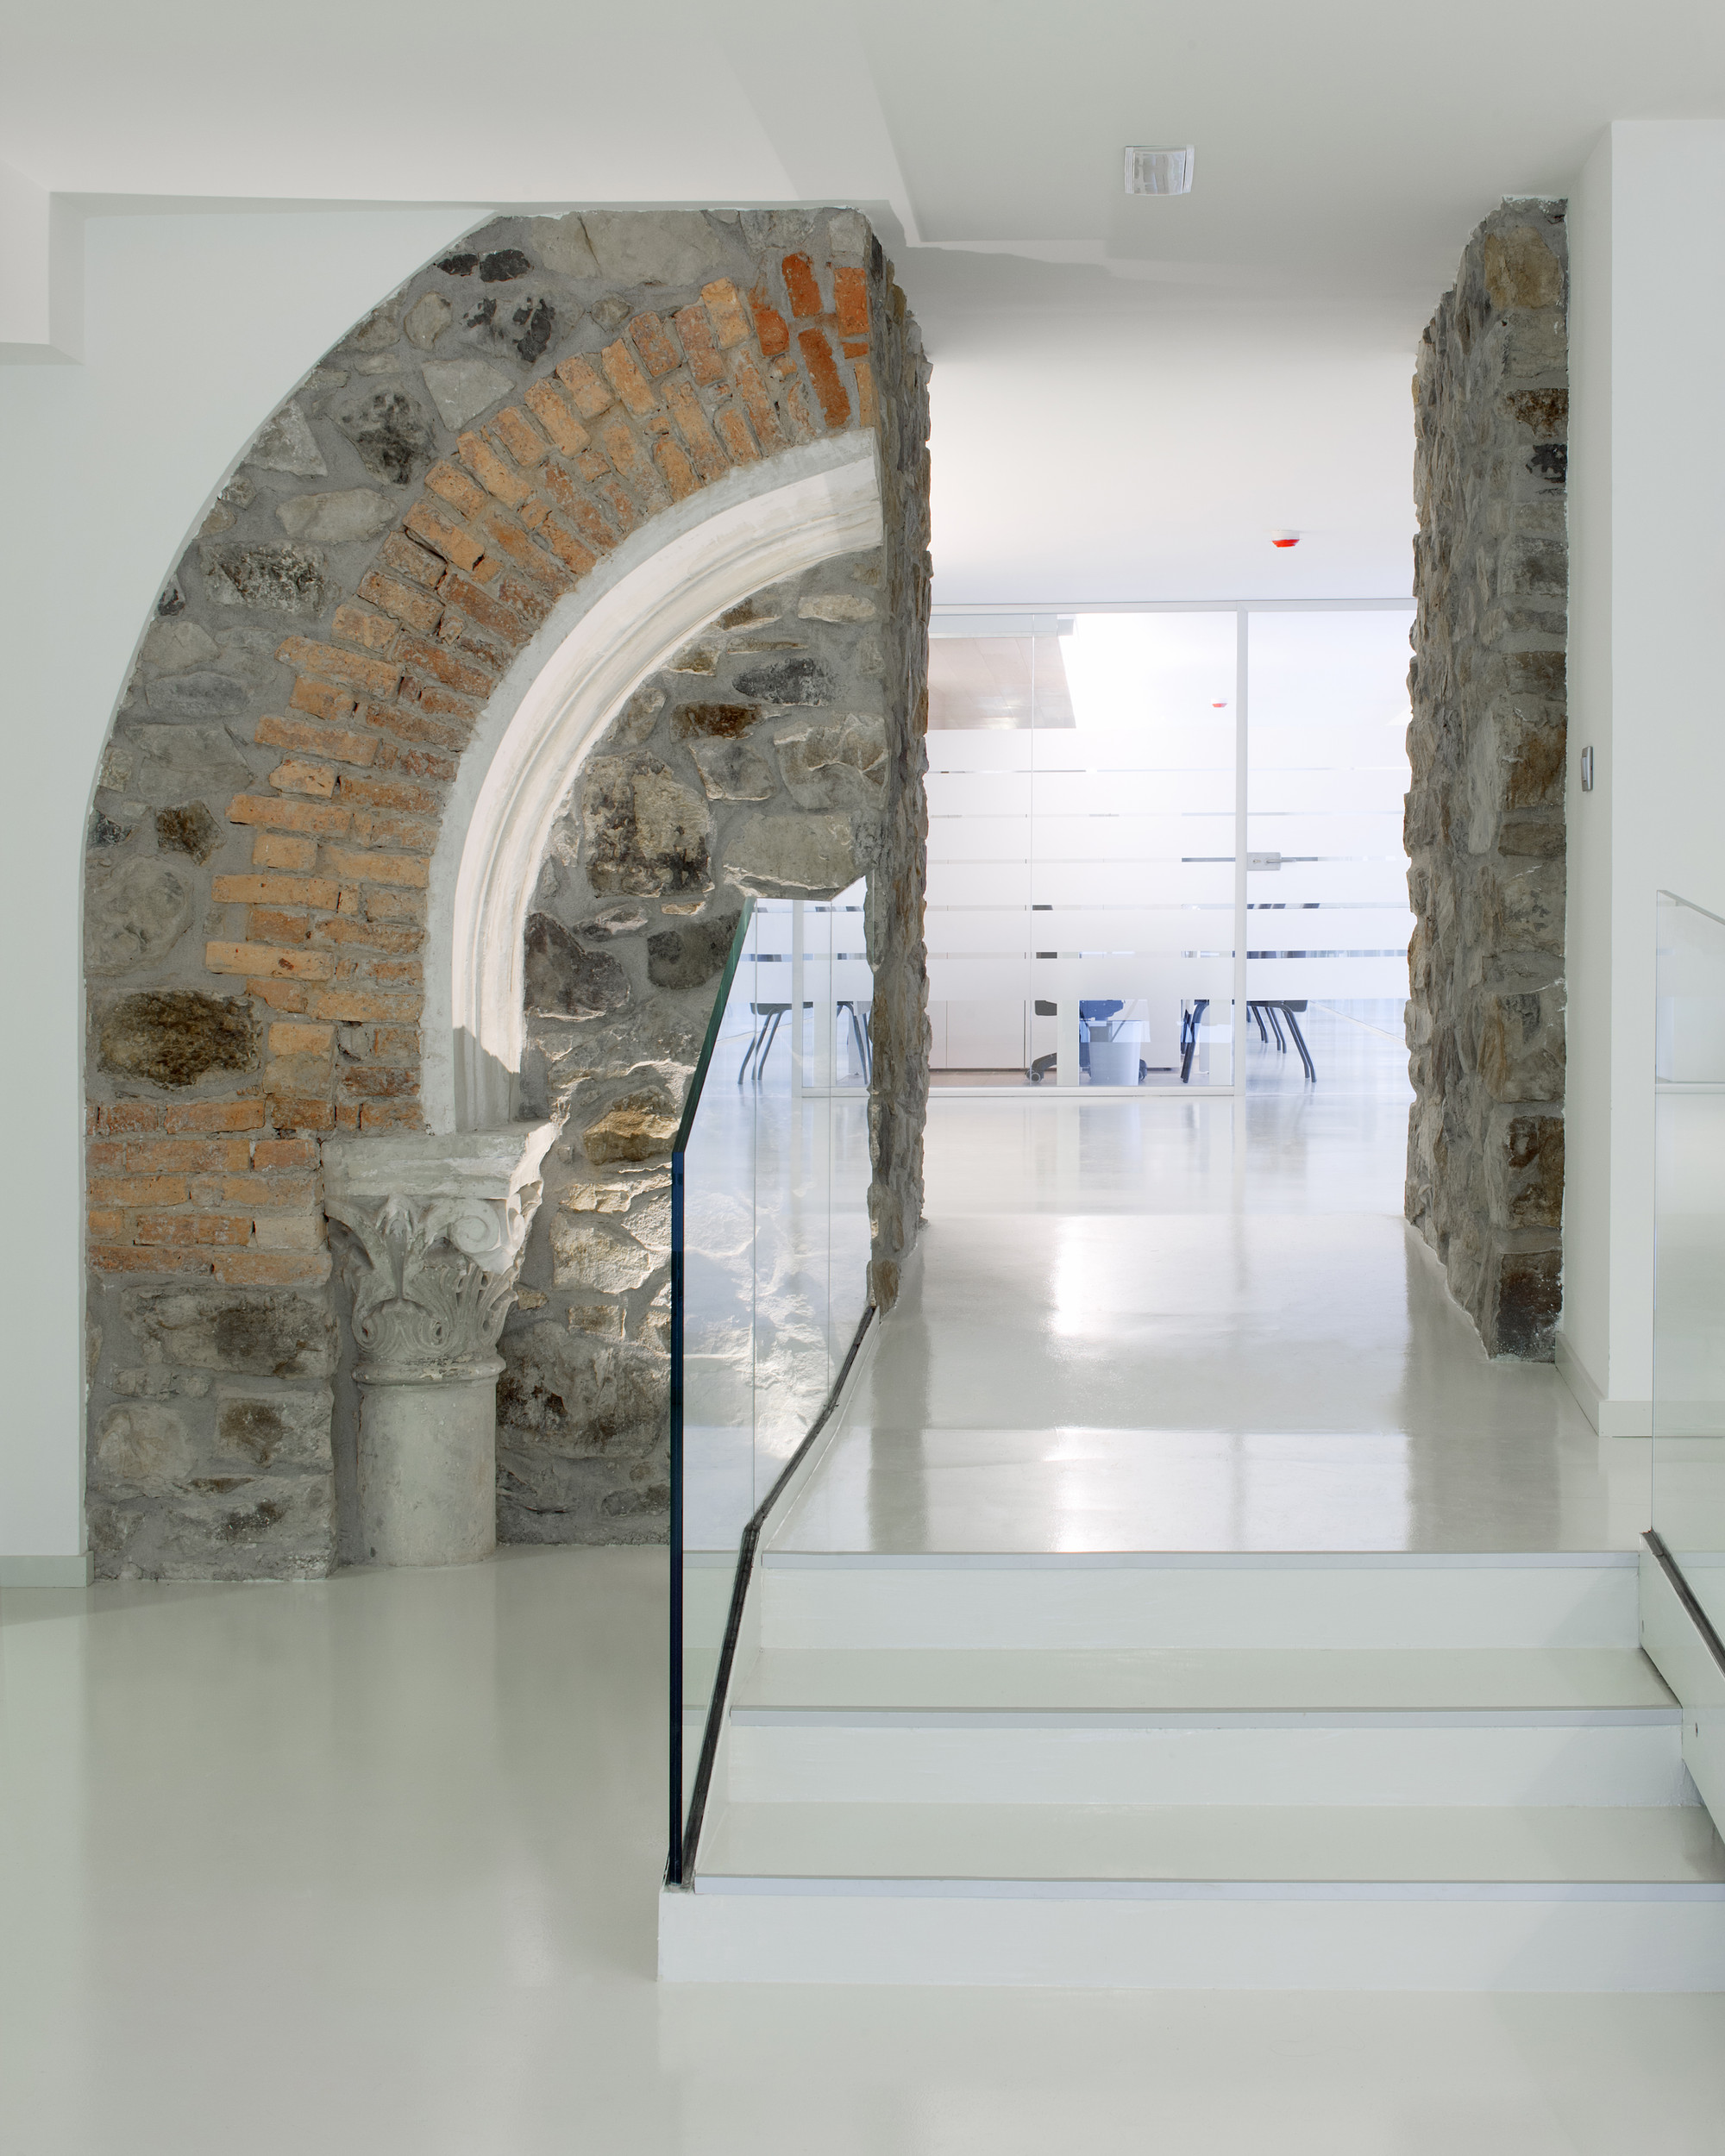 Refurbishment of Deusto University / ACXT